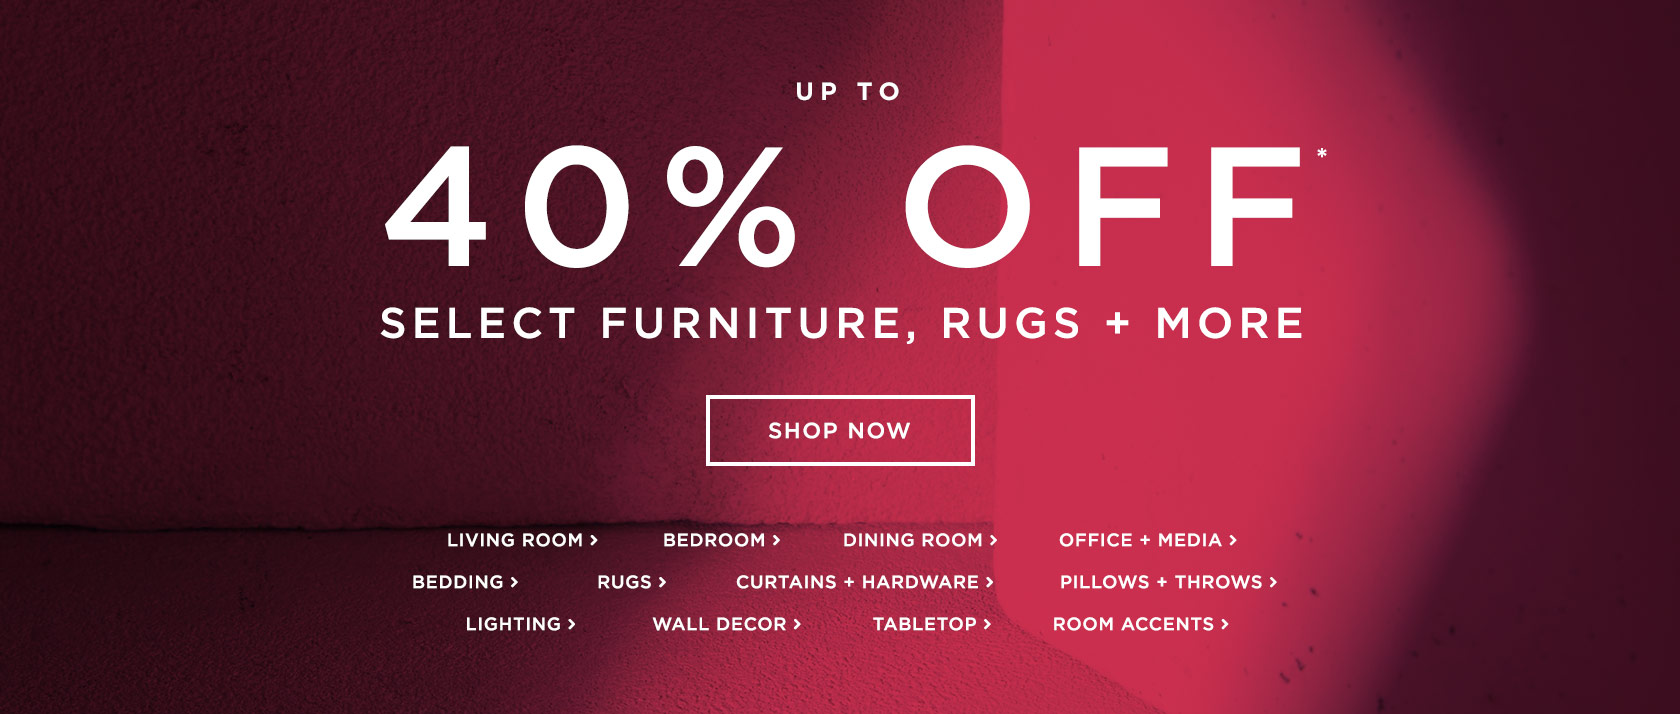 Up To 40% Off Select Furniture, Rugs + More